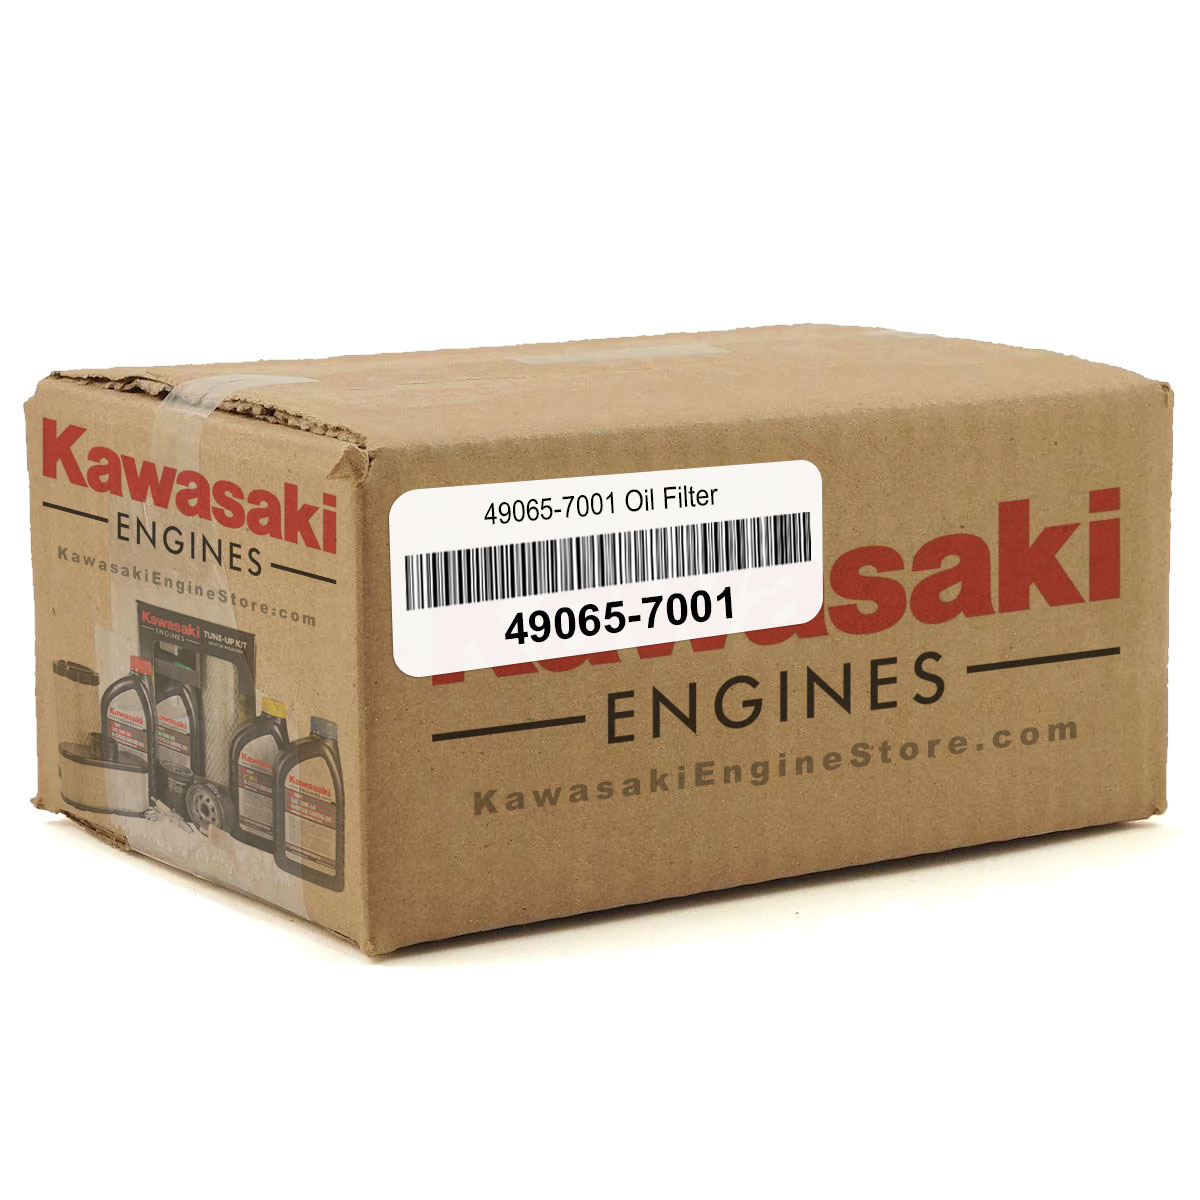 Kawasaki 49065-7001 Oil Filter